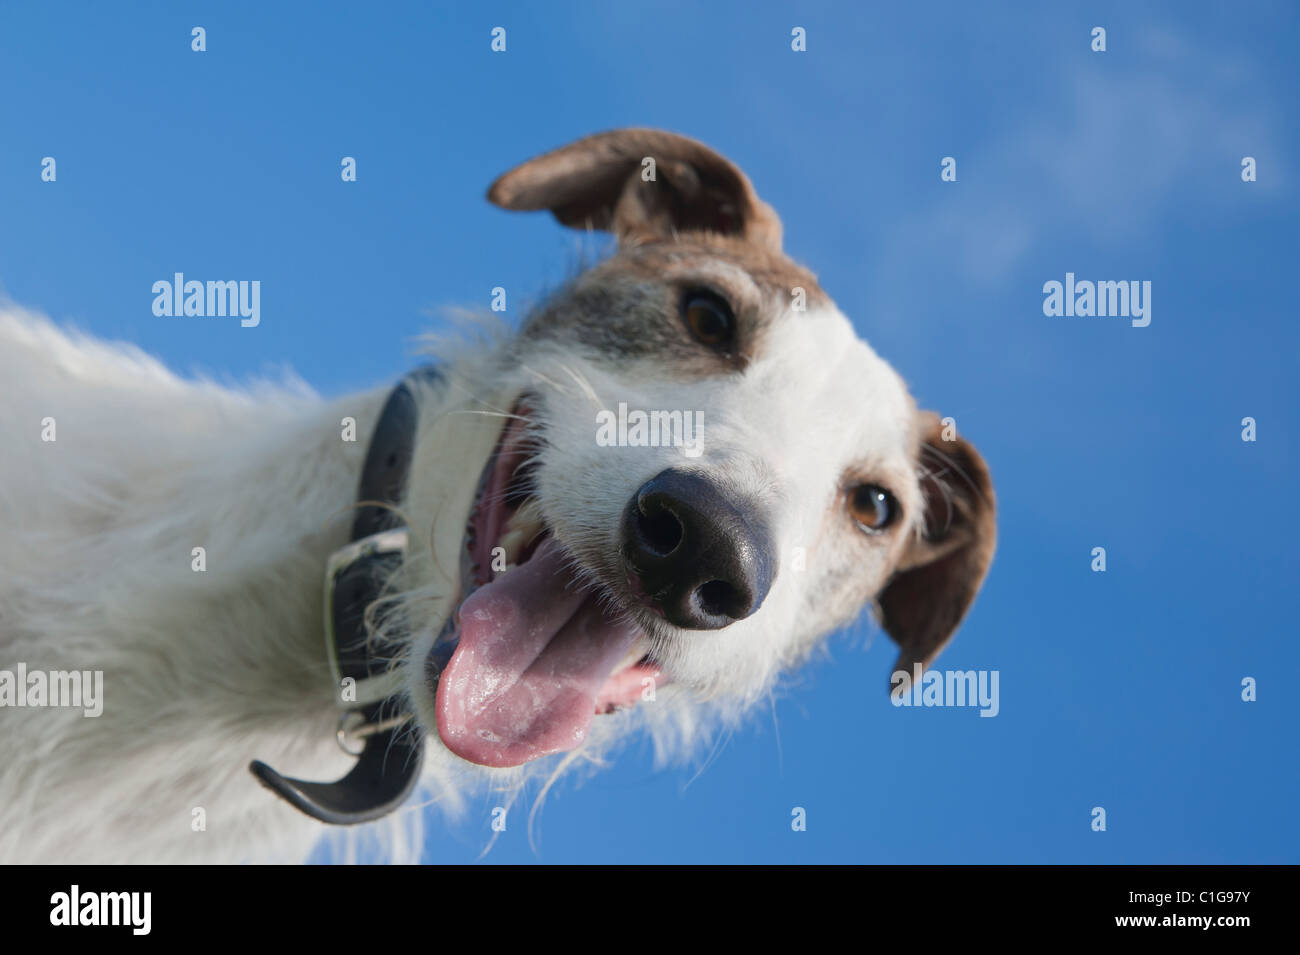 Panting lurcher looking down - Stock Image